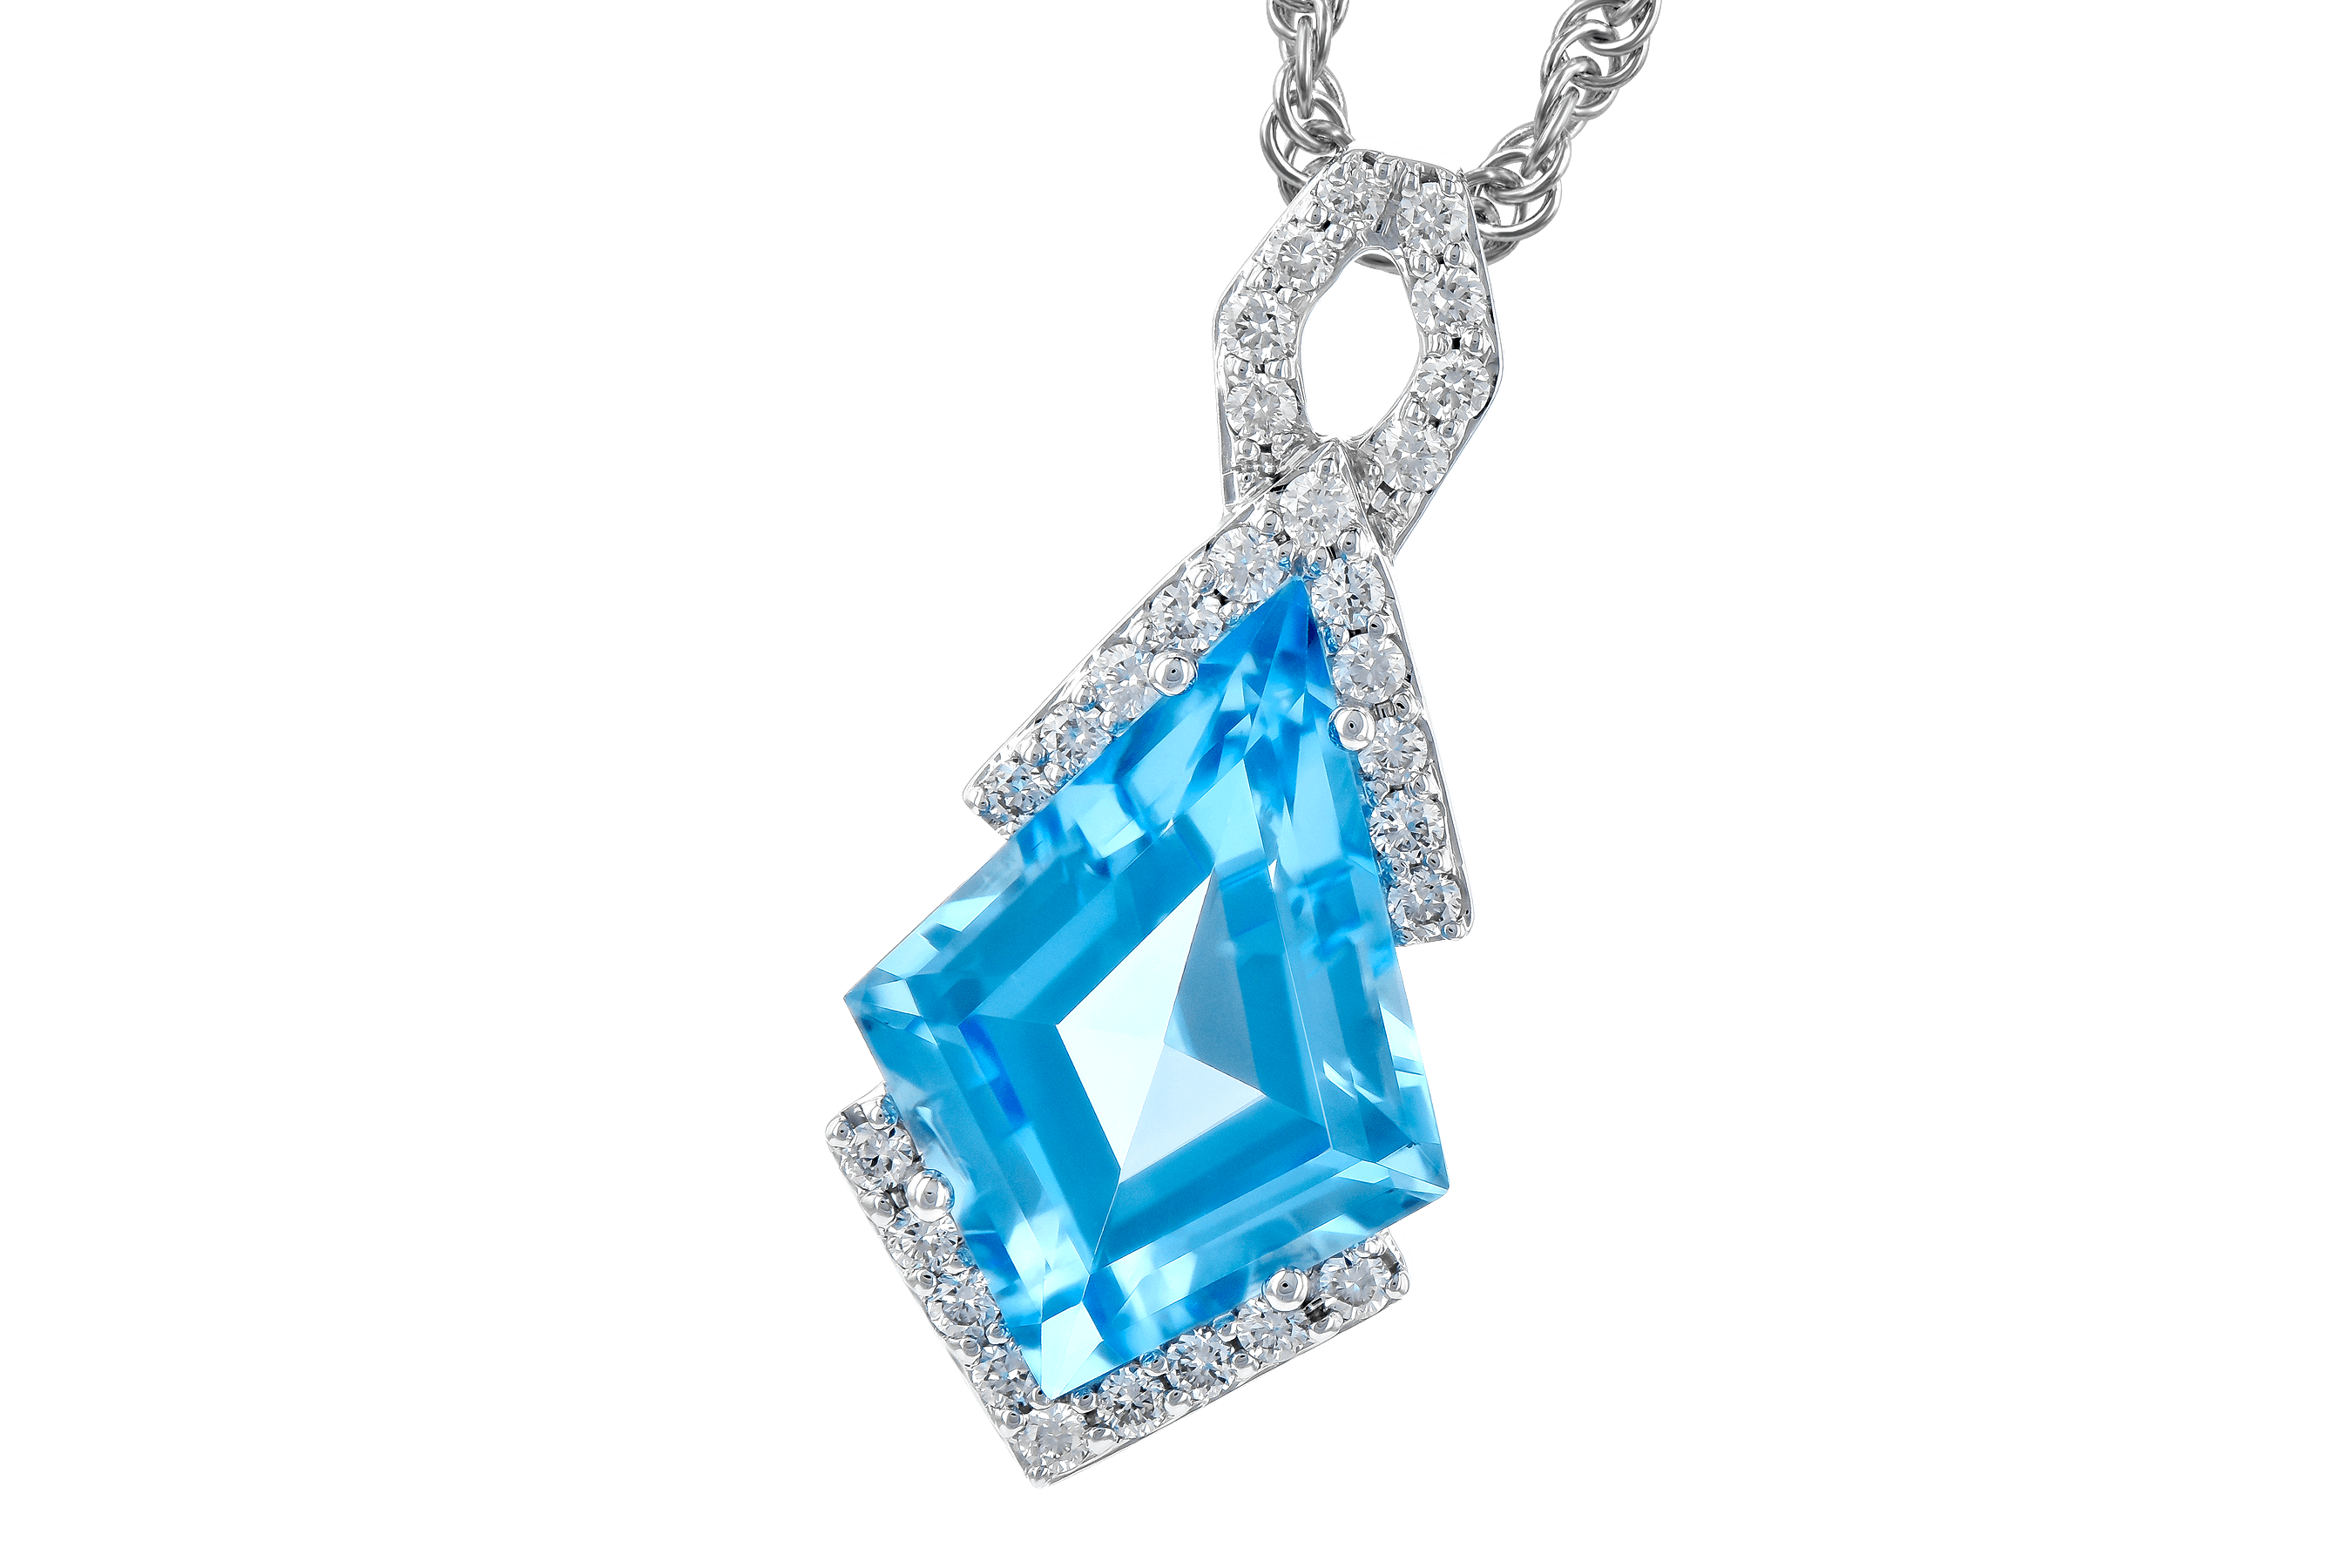 M272-84276: NECK 2.40 BLUE TOPAZ 2.53 TGW